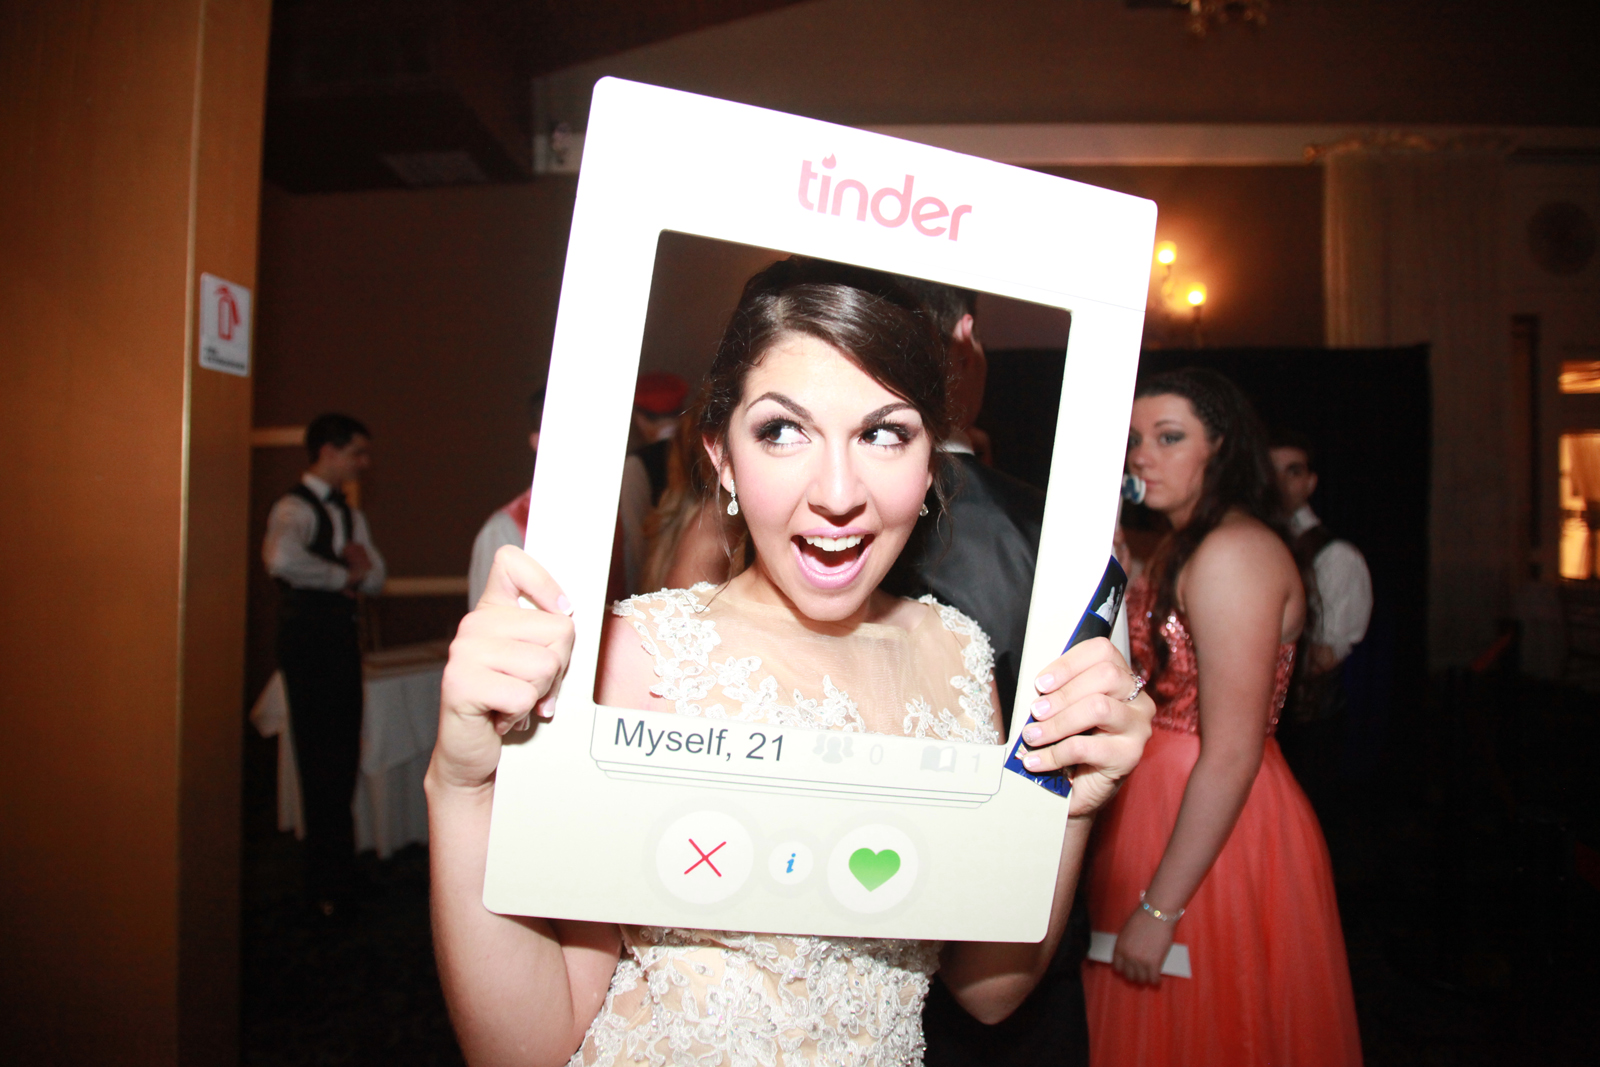 Fun Photo Booth Options